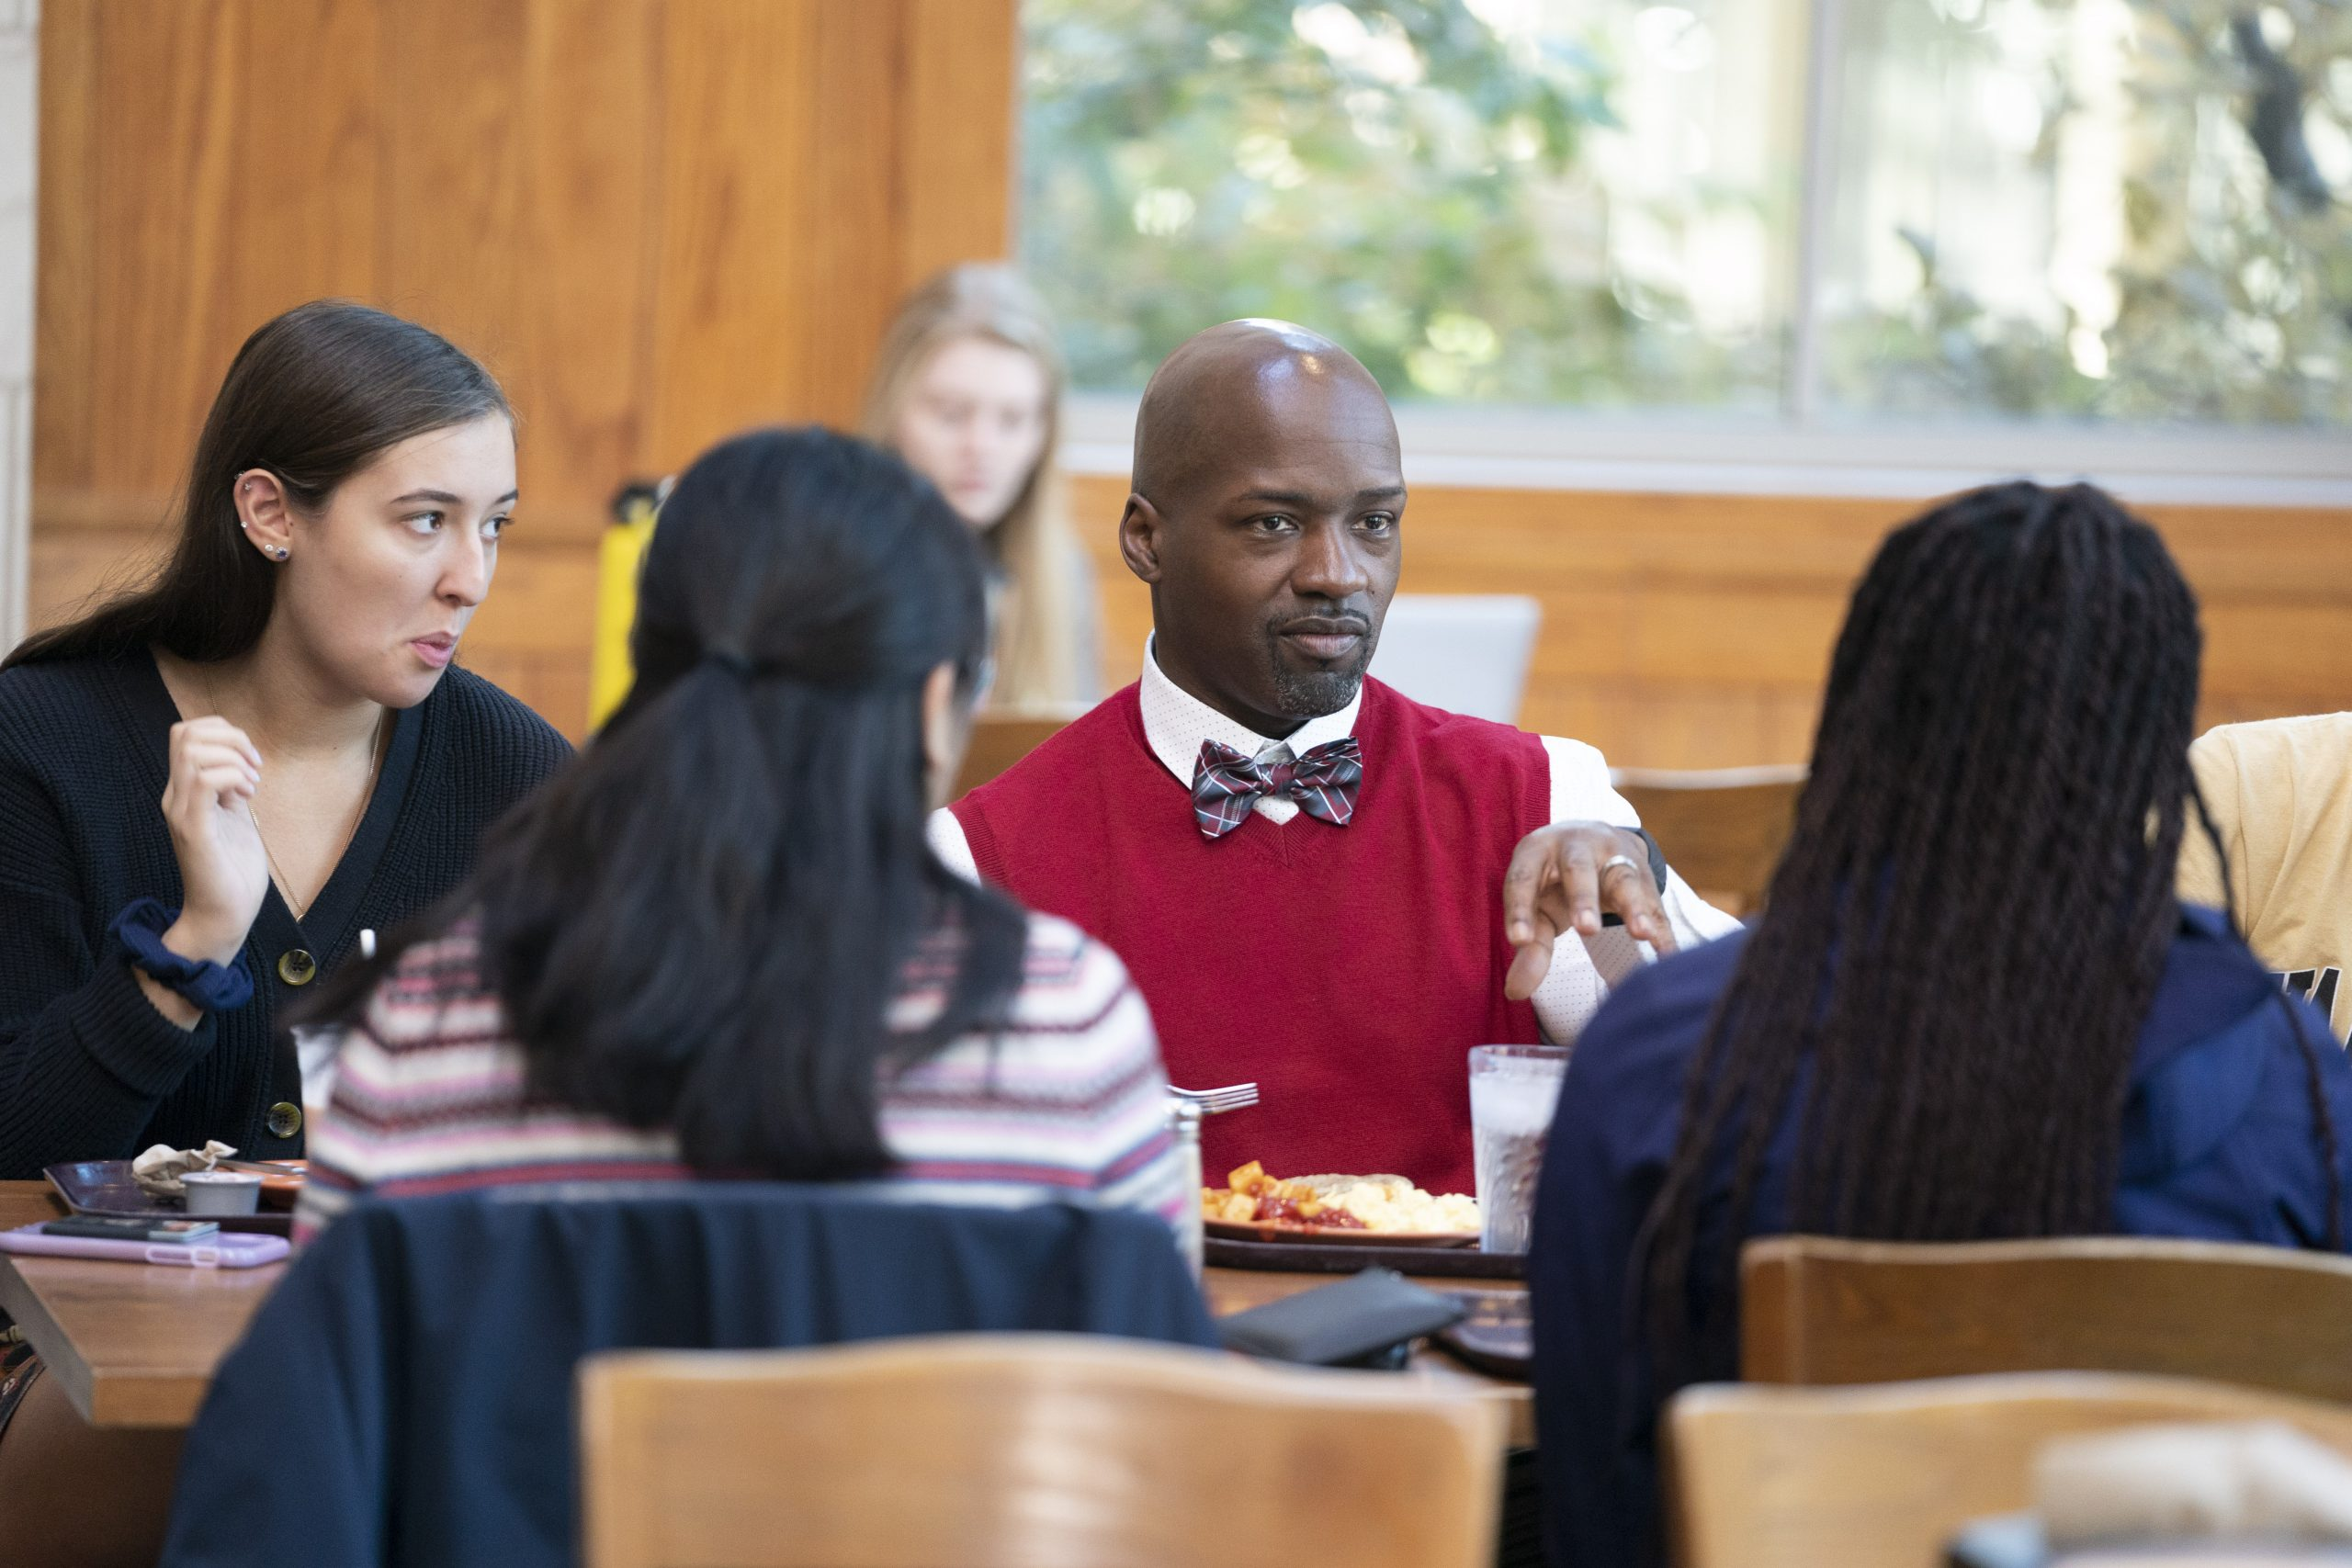 students in the dining hall with a professor